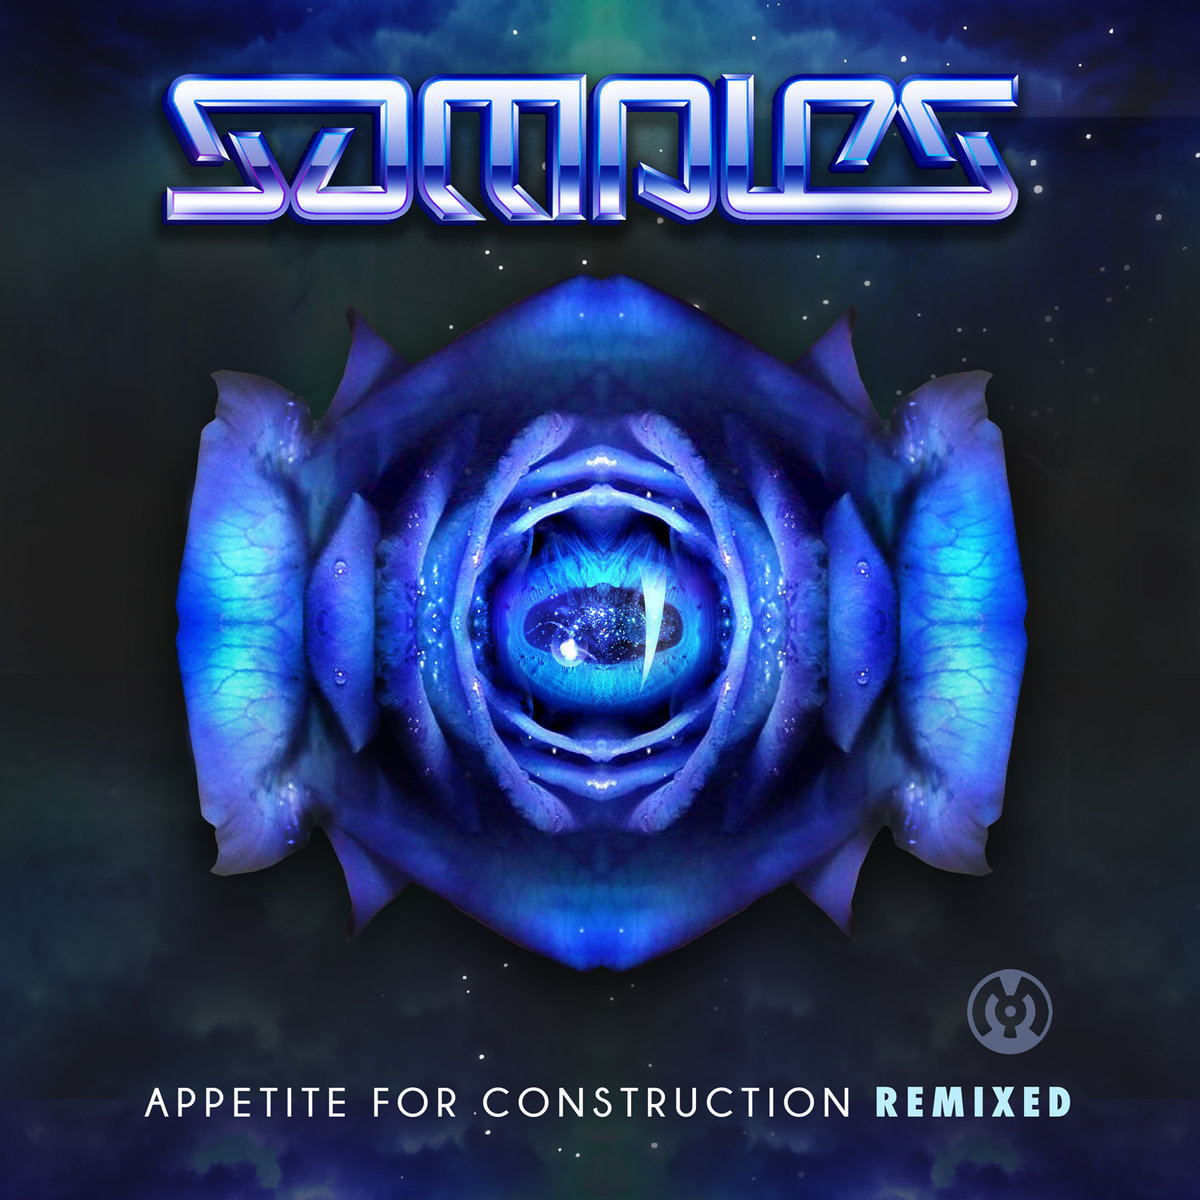 Samples - Corporate (Paradigm Theorem Remix) @ 'Appetite For Construction Remixed' album (electronic, dubstep)